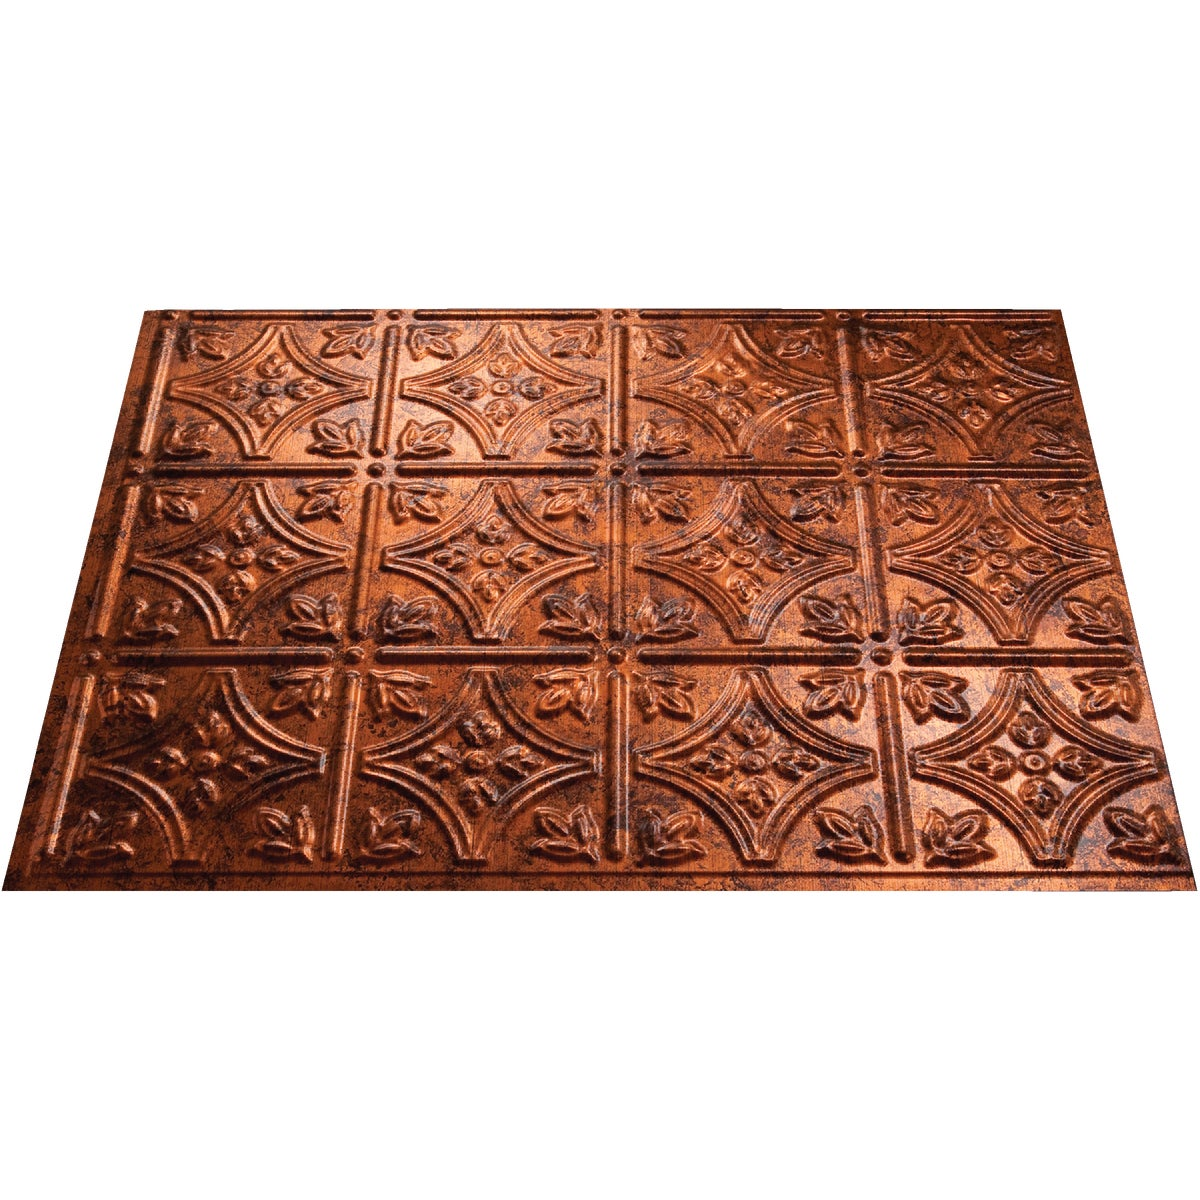 MOON COPPER TRAD 1 PANEL - D60-18 by Acp